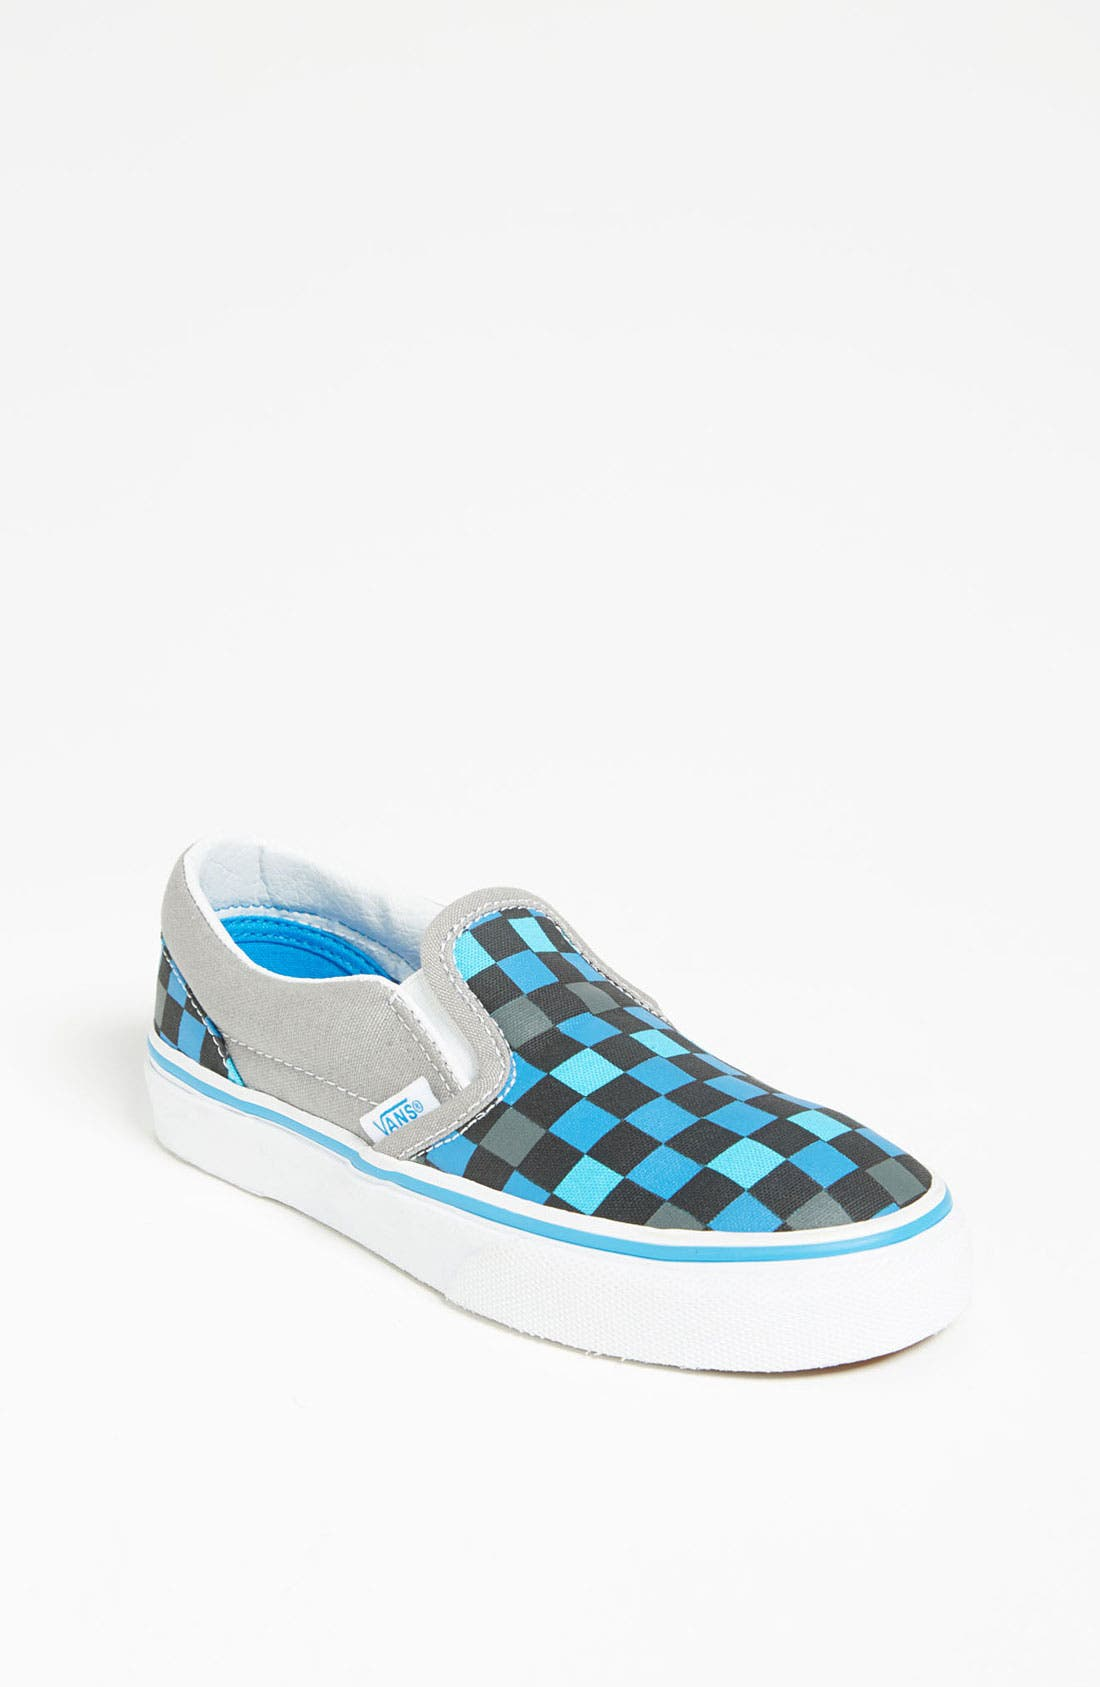 Alternate Image 1 Selected - Vans 'Multi Check' Slip-On (Walker, Toddler, Little Kid & Big Kid)